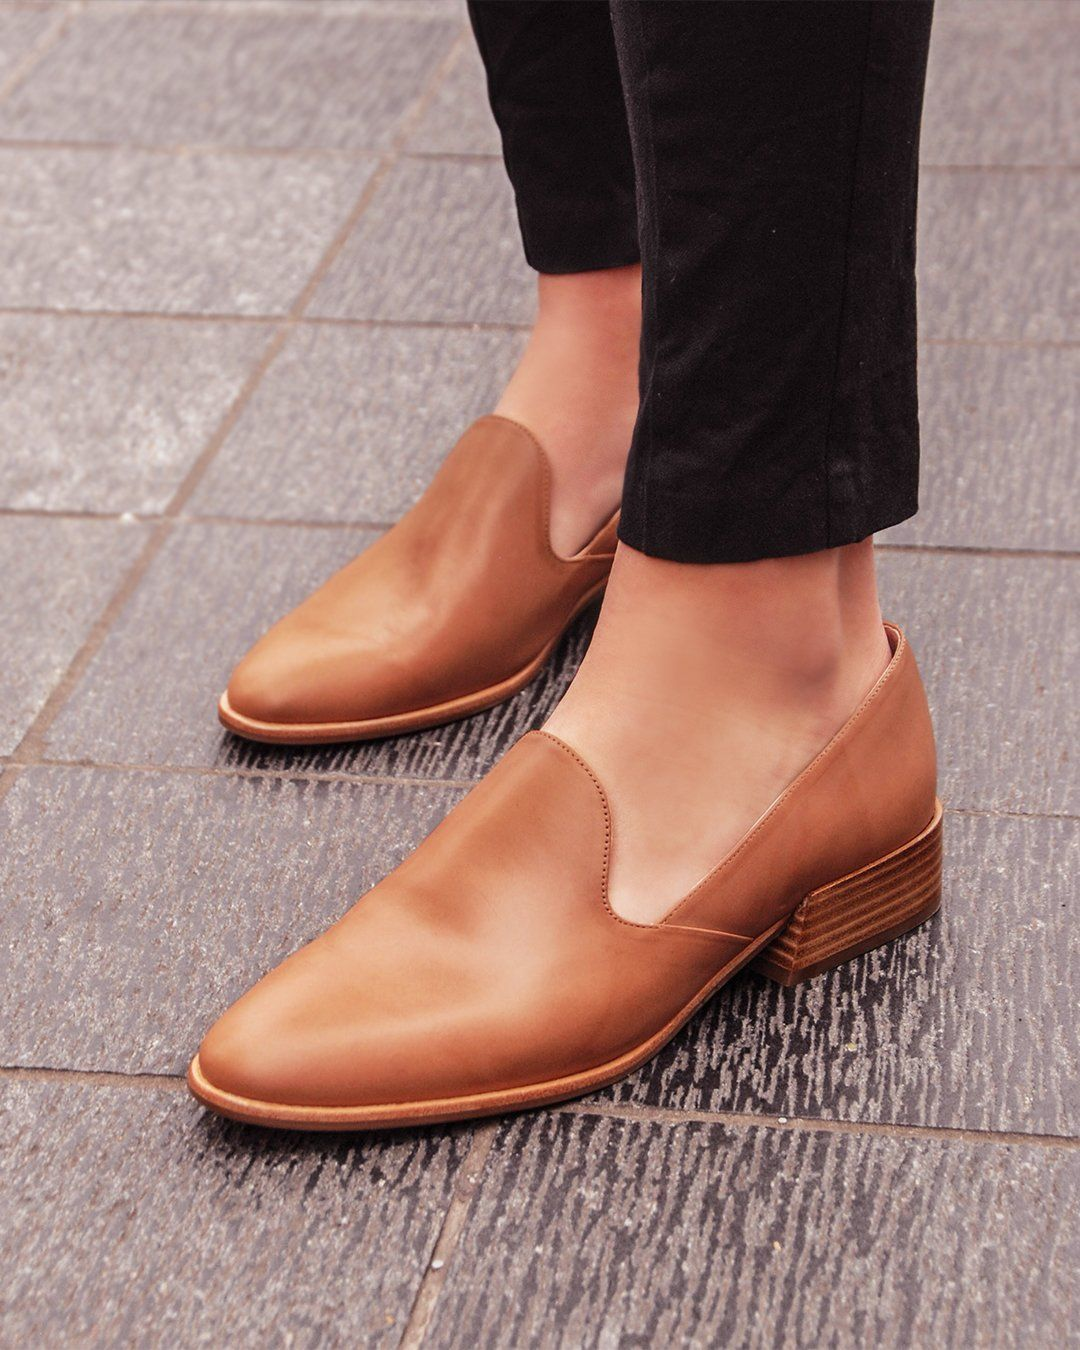 Xandera Loafers Light Tan Leather in